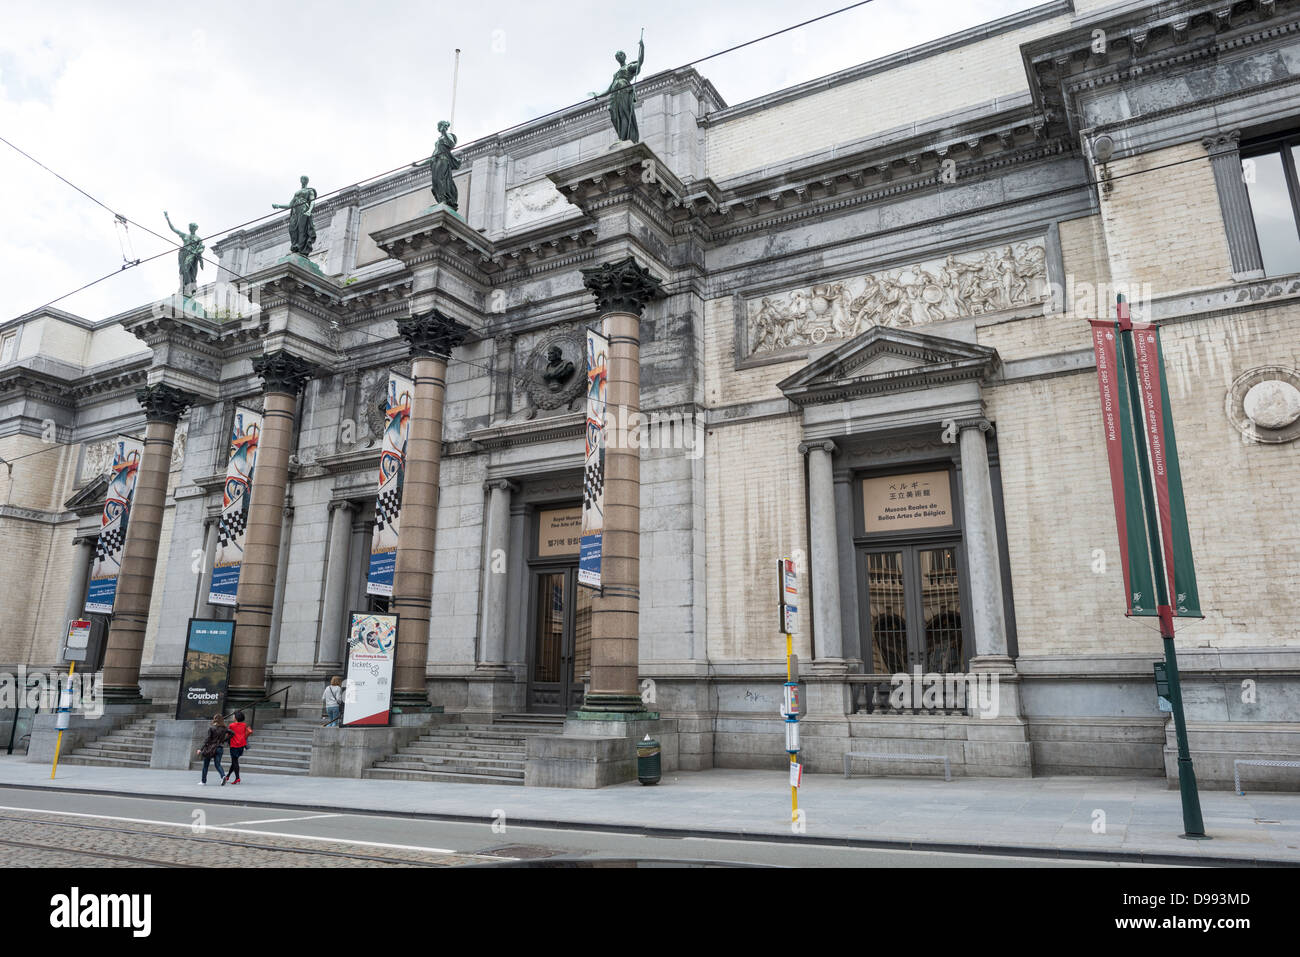 BRUSSELS, Belgium - The front of the building of the Royal Museums of Fine Arts in Belgium (in French, Musées - Stock Image